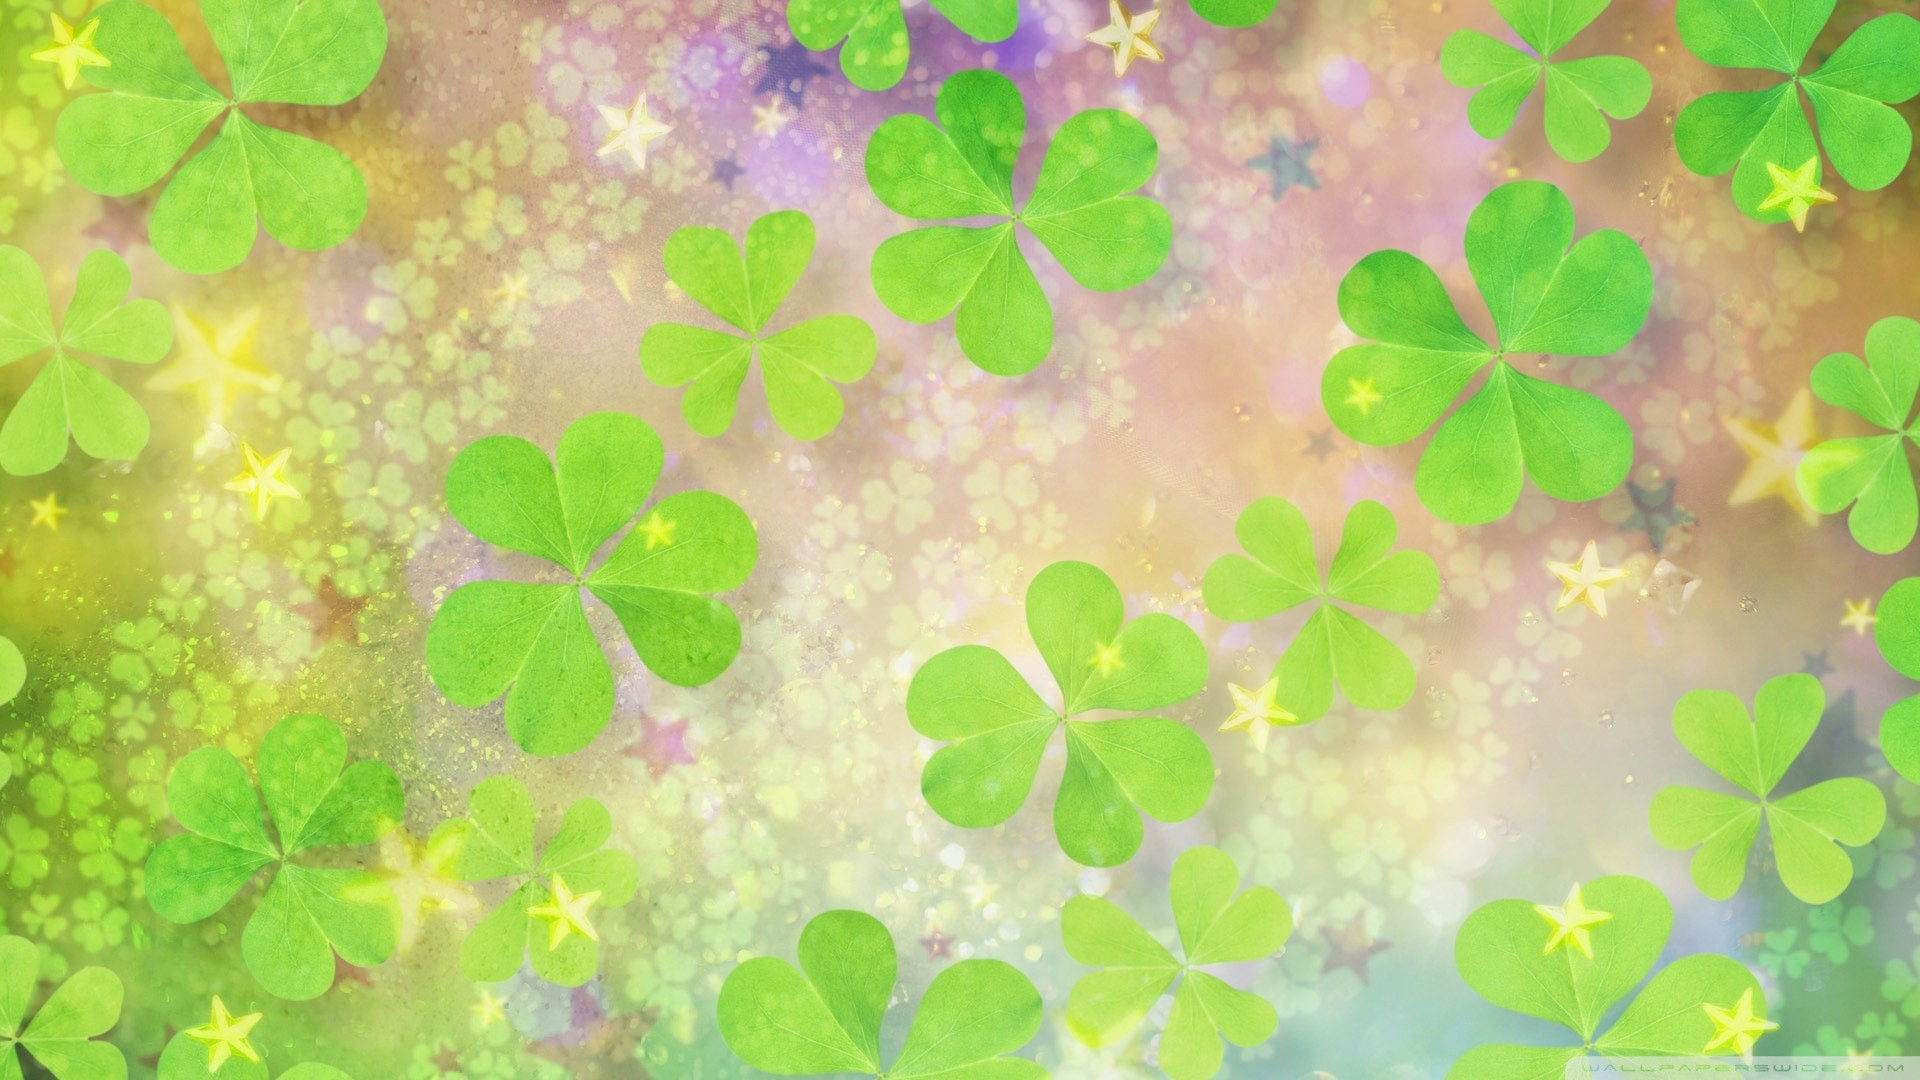 Green Clover Image